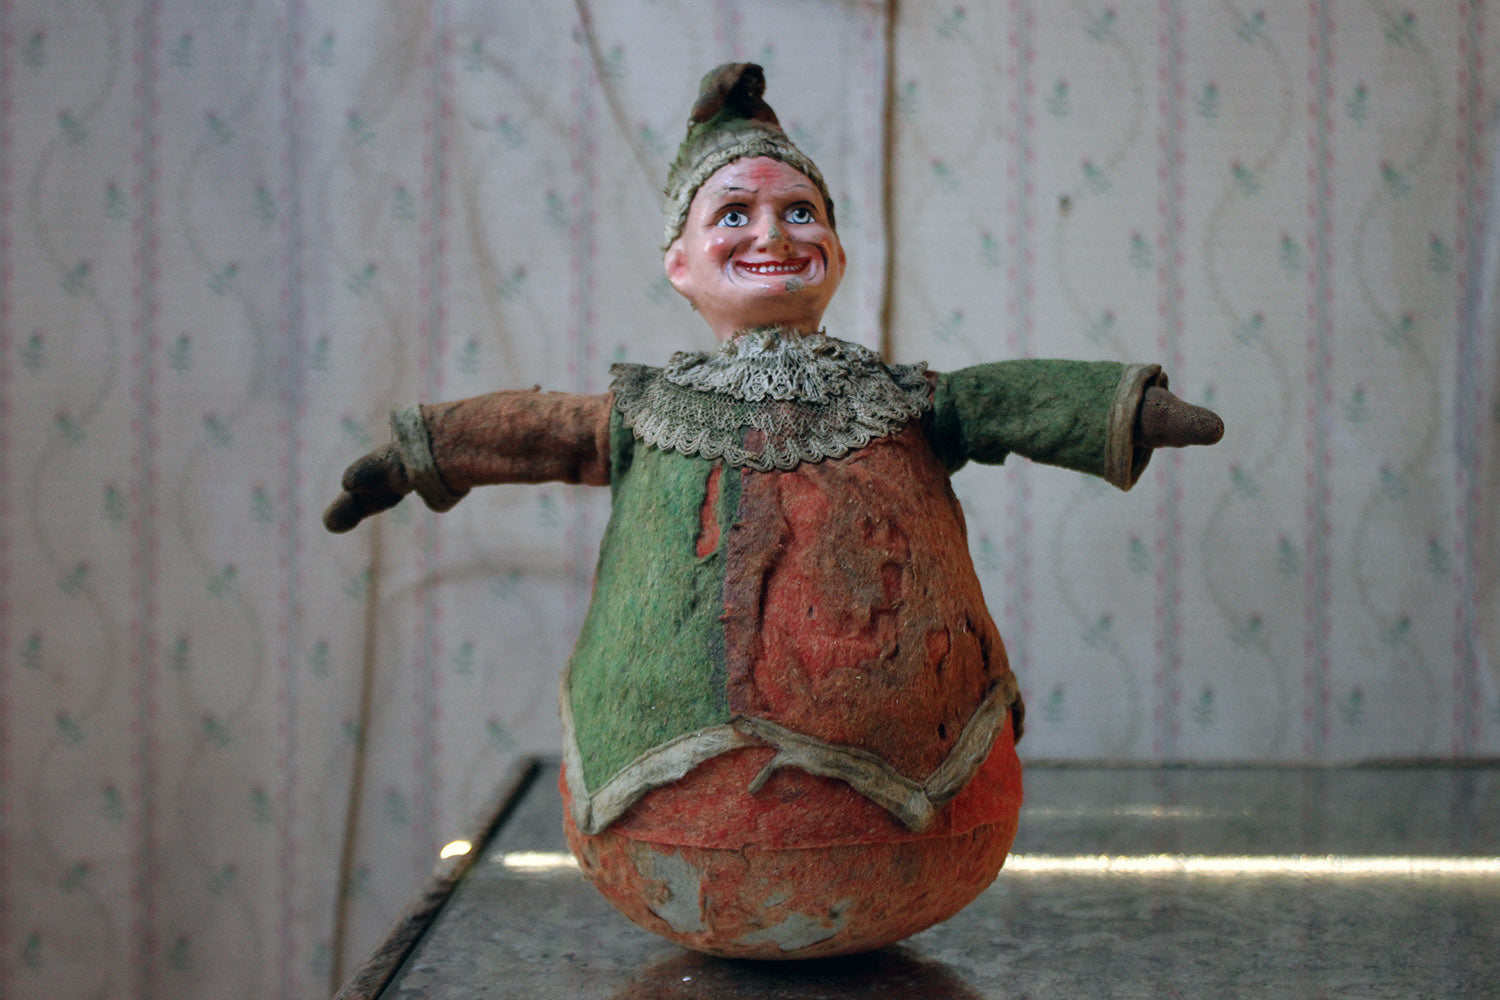 An Early 20thC Mr Punch Roly Poly Toy c.1915-25